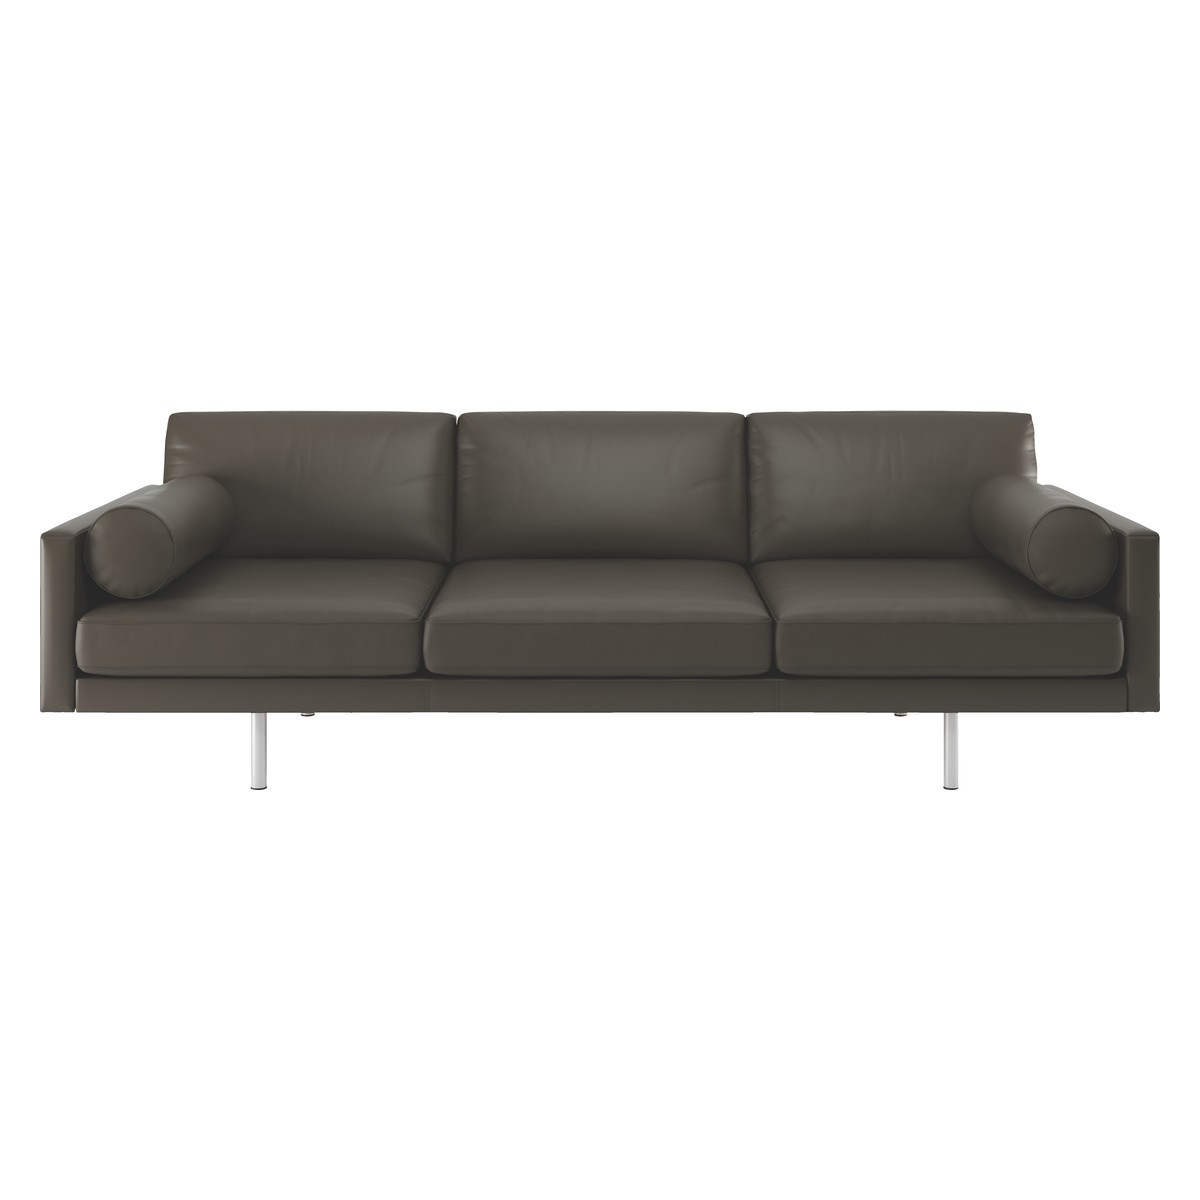 Spencer Grey Leather 4 Seater Sofa Metal Legs Buy Now At Habitat Uk With Regard To 4 Seater Sofas (View 2 of 15)